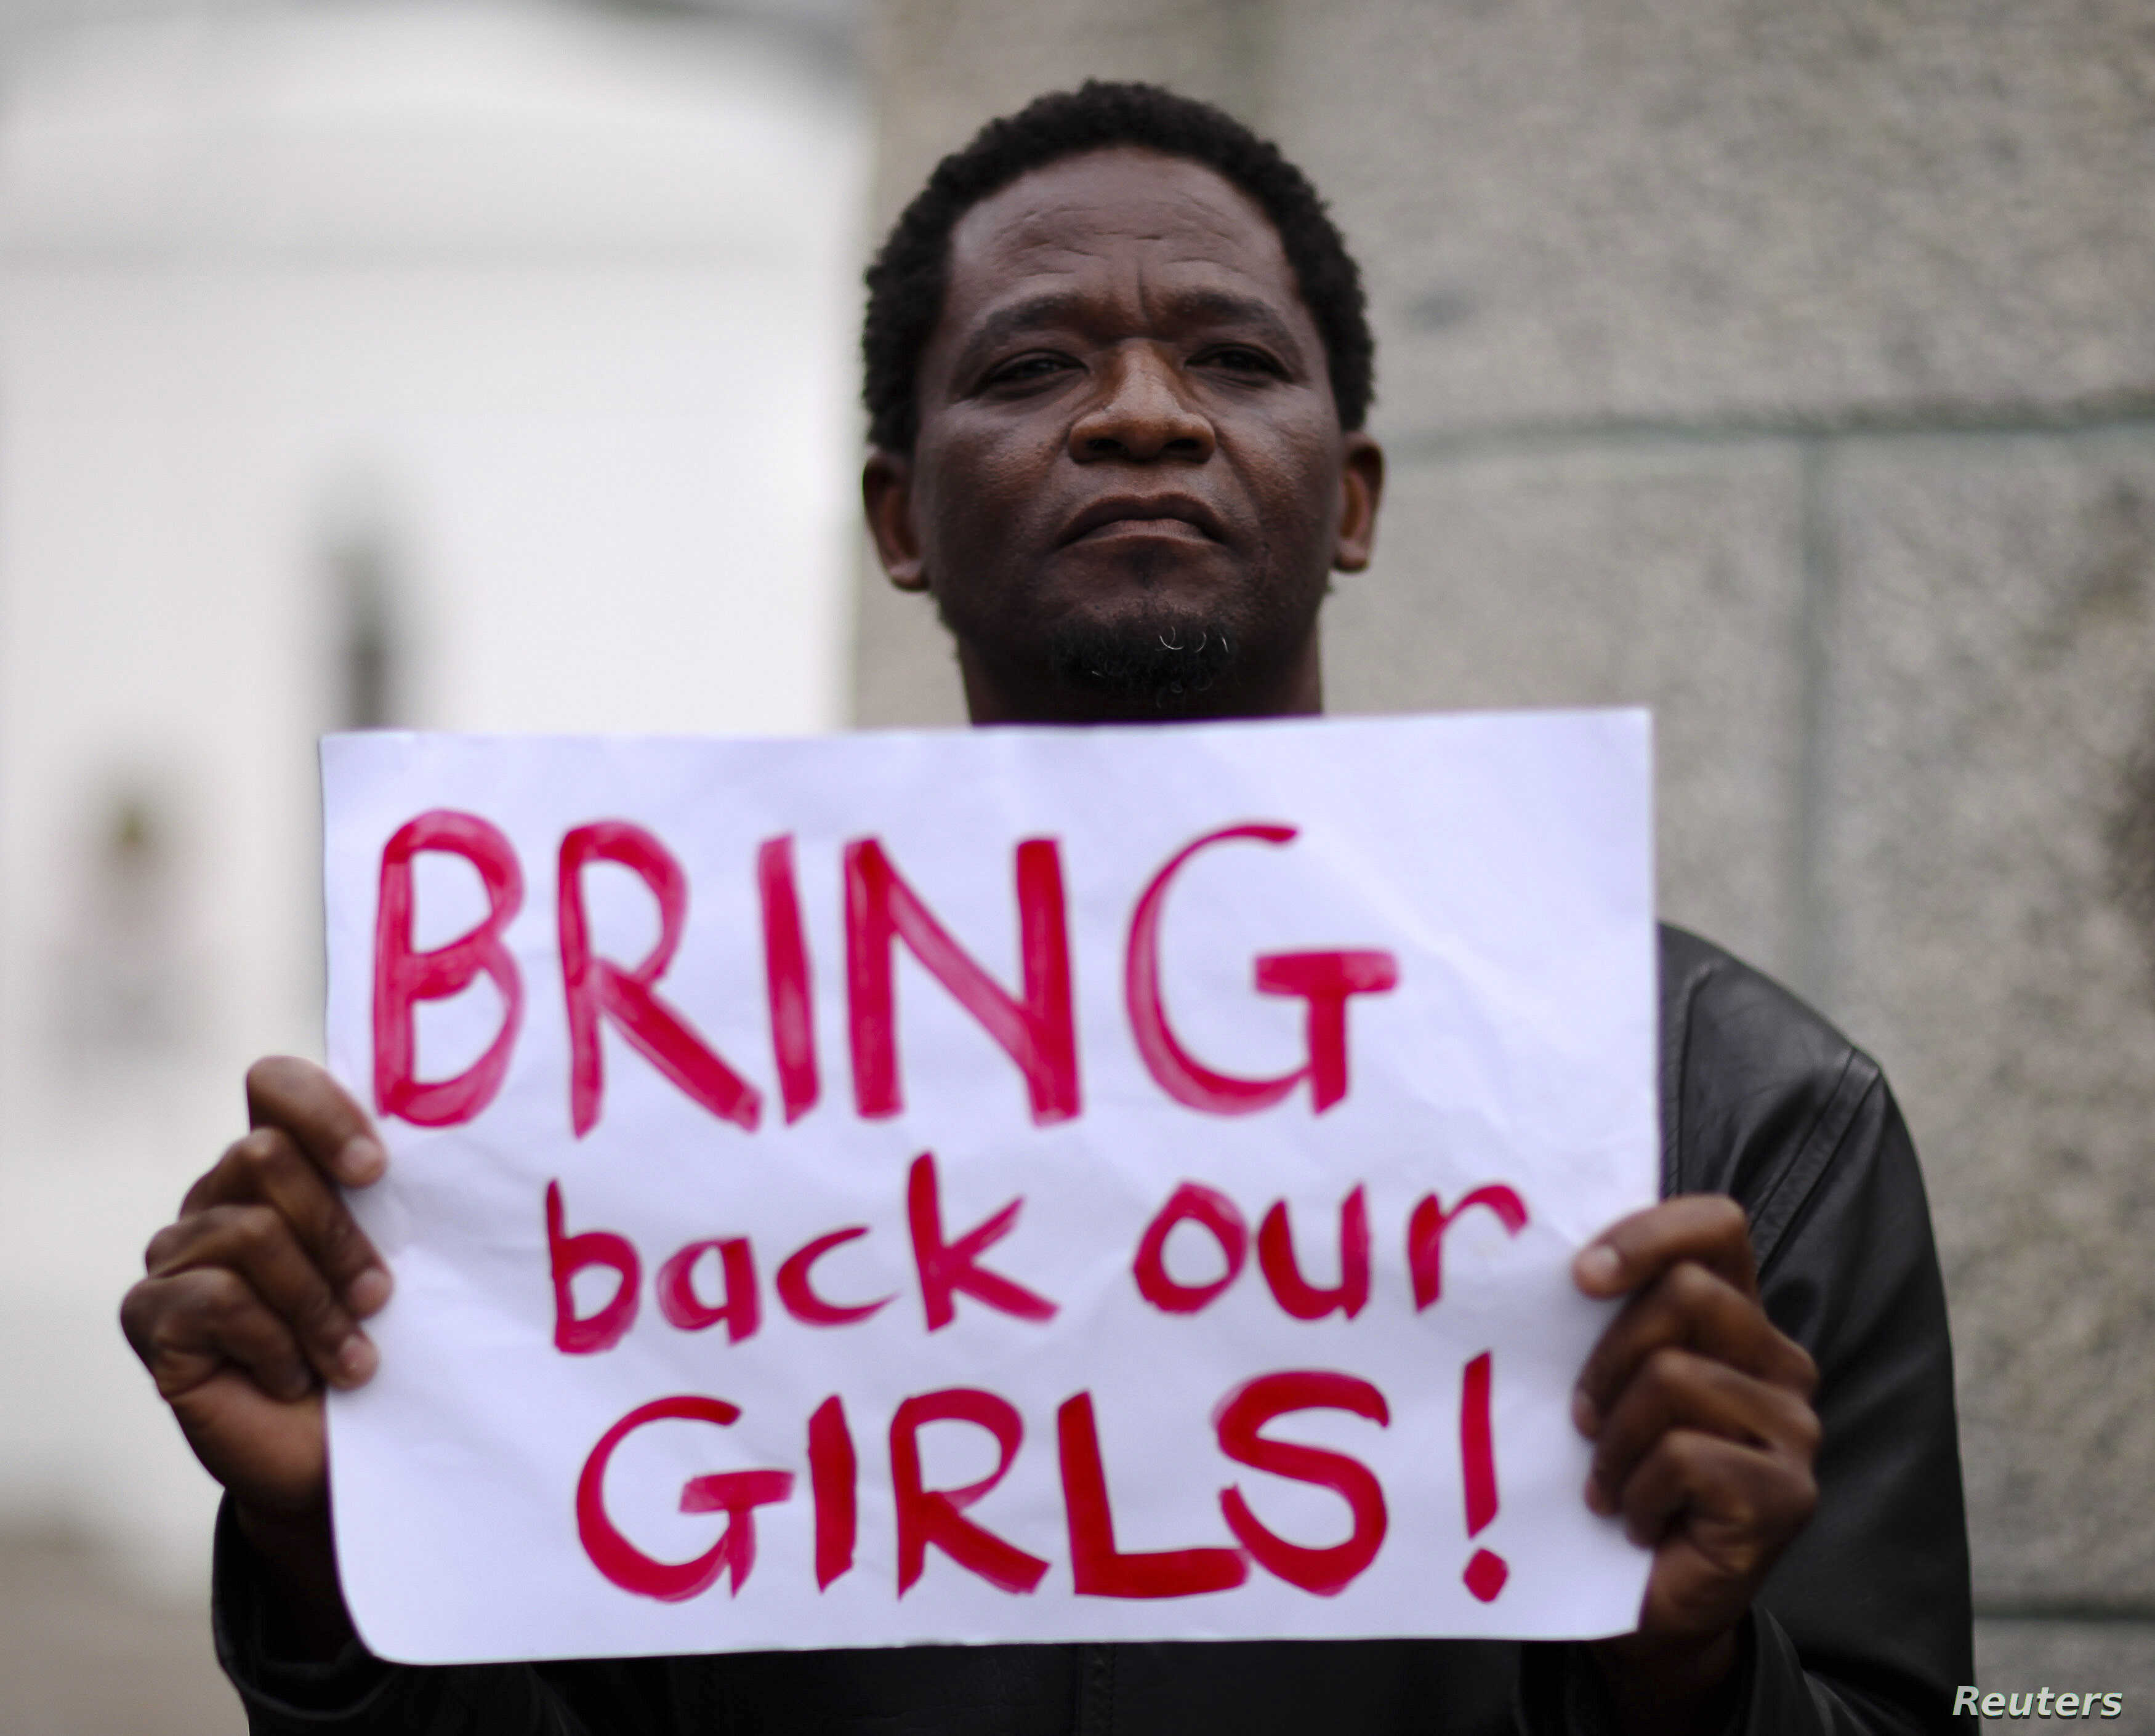 A protester holds a sign during a march in support of the girls kidnapped in Nigeria by members of Boko Haram, in Cape Town, May 8, 2014.